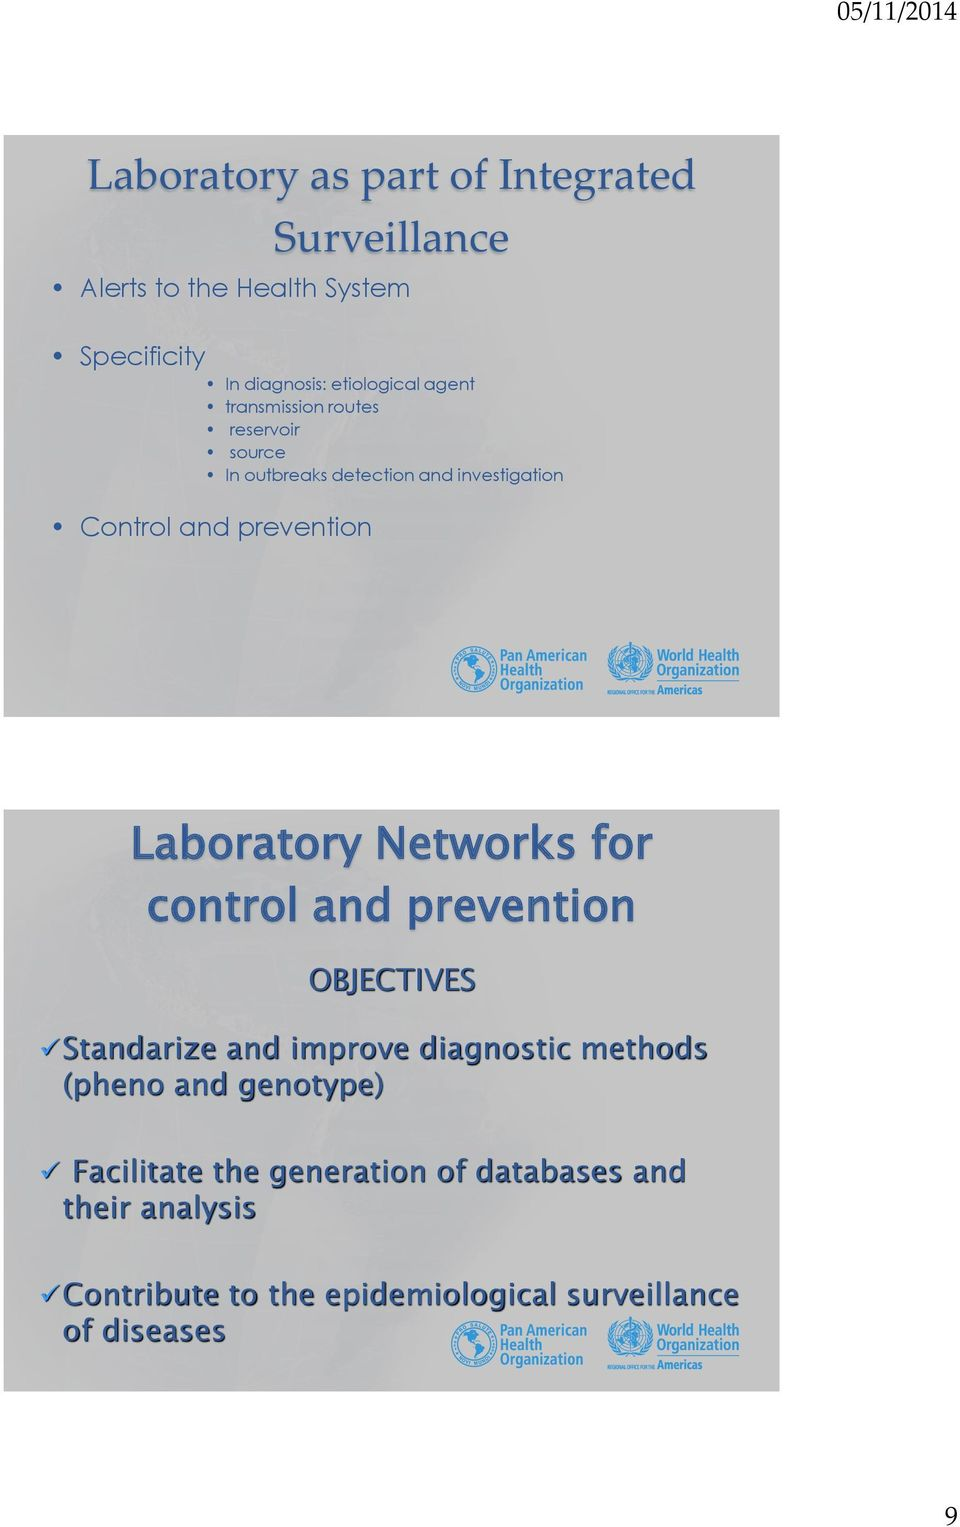 Laboratory Networks for control and prevention OBJECTIVES Standarize and improve diagnostic methods (pheno and